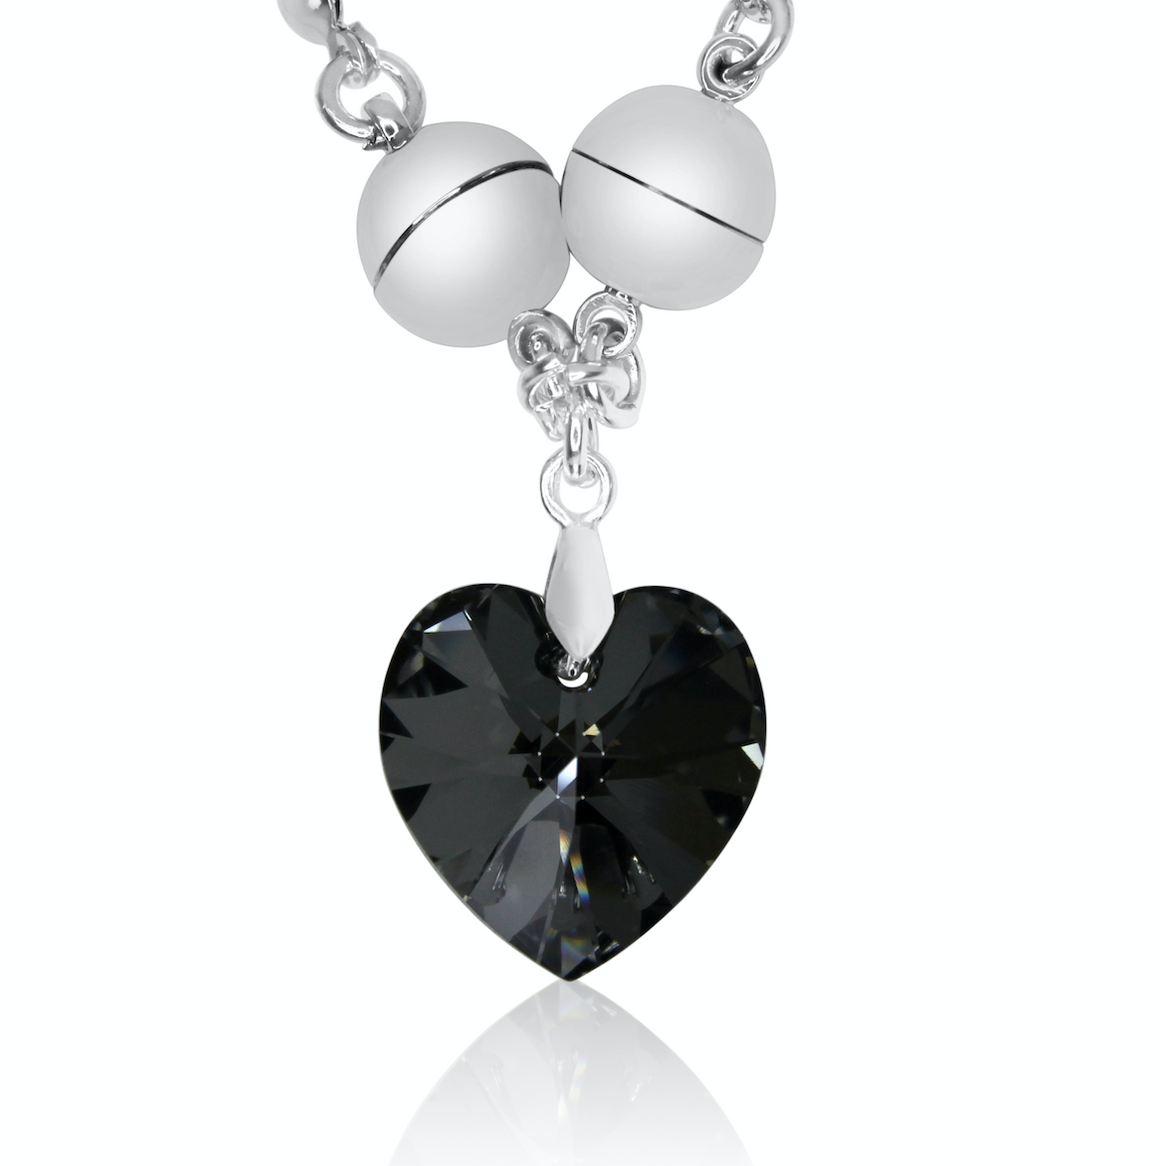 Swarovski Small Heart pendant - Charcoal - choose magnet colour